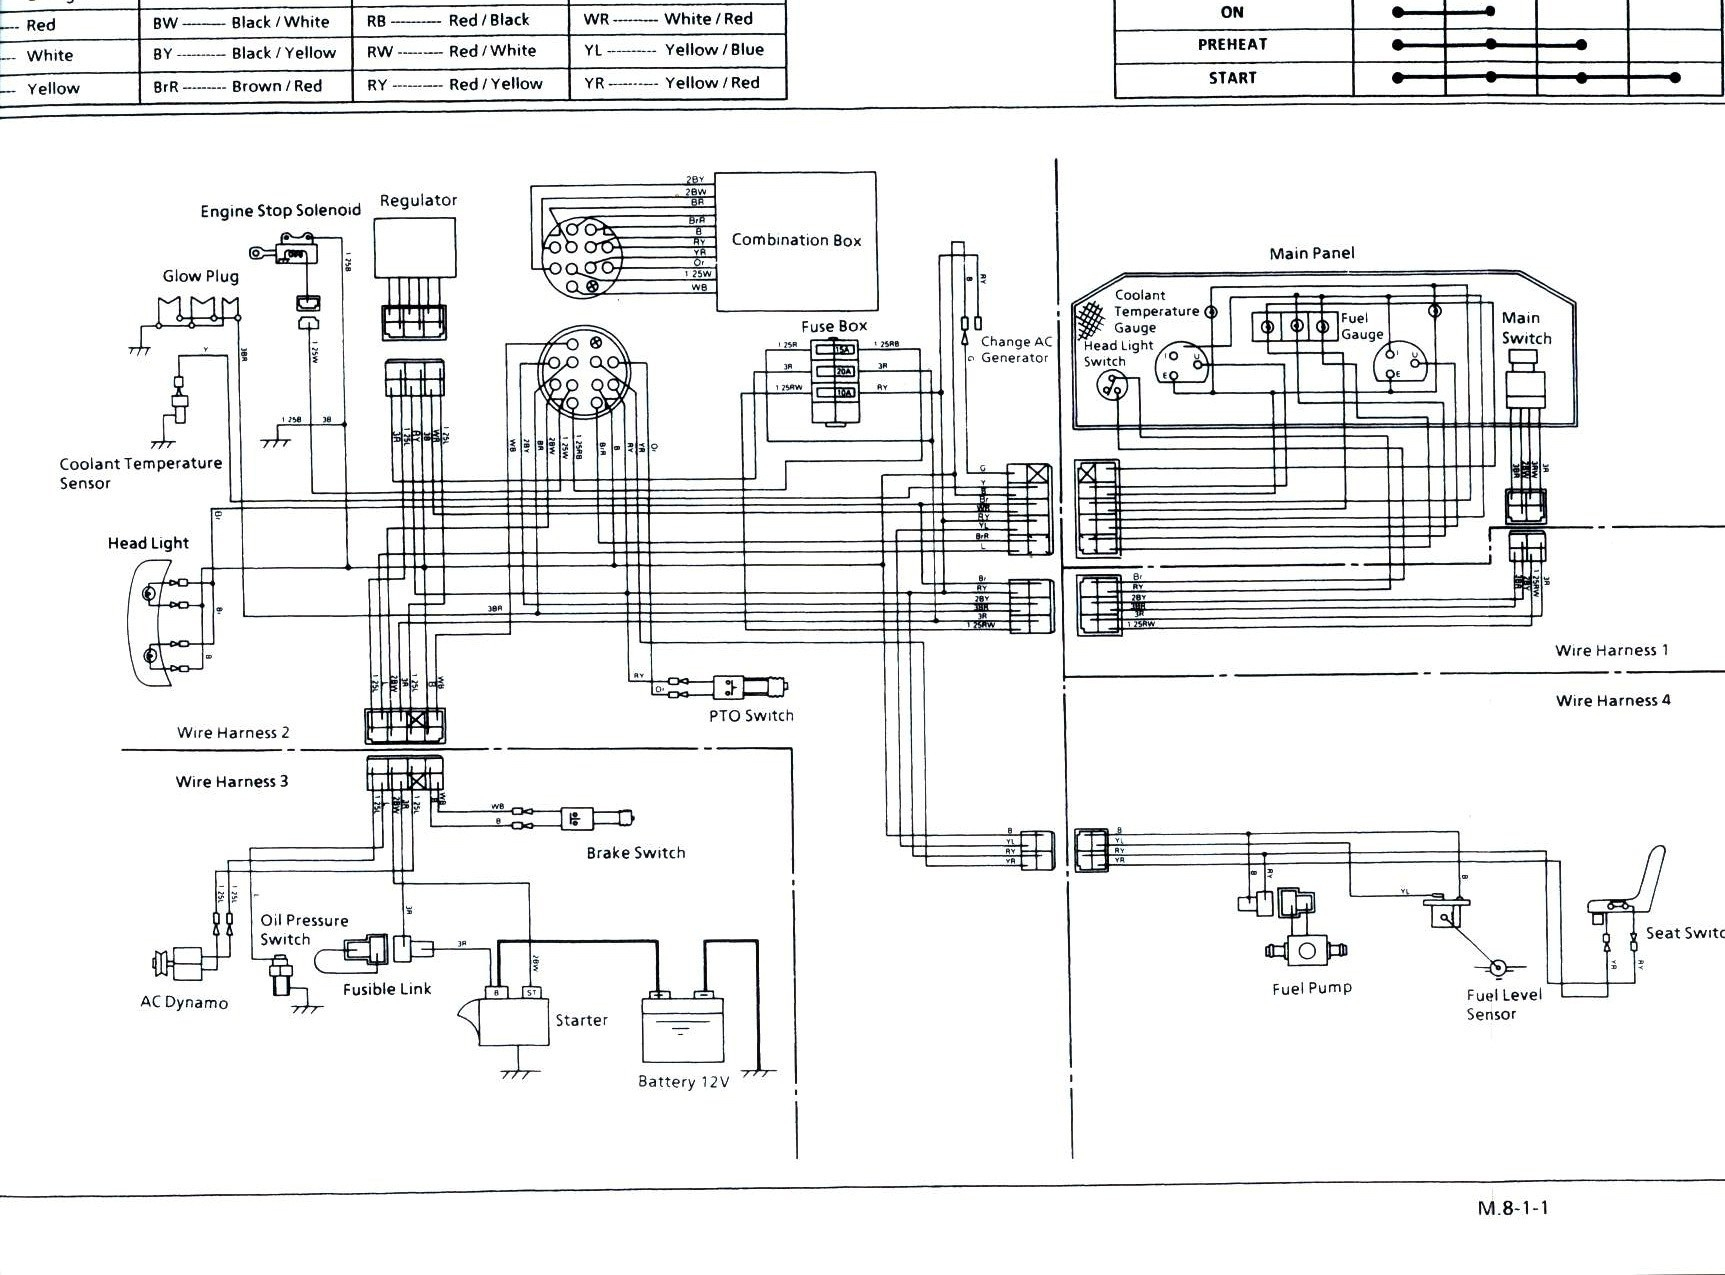 Kubota Tractor Wiring Diagrams Wiring Diagram Name L2900 Kubota Tractor Wiring Diagrams